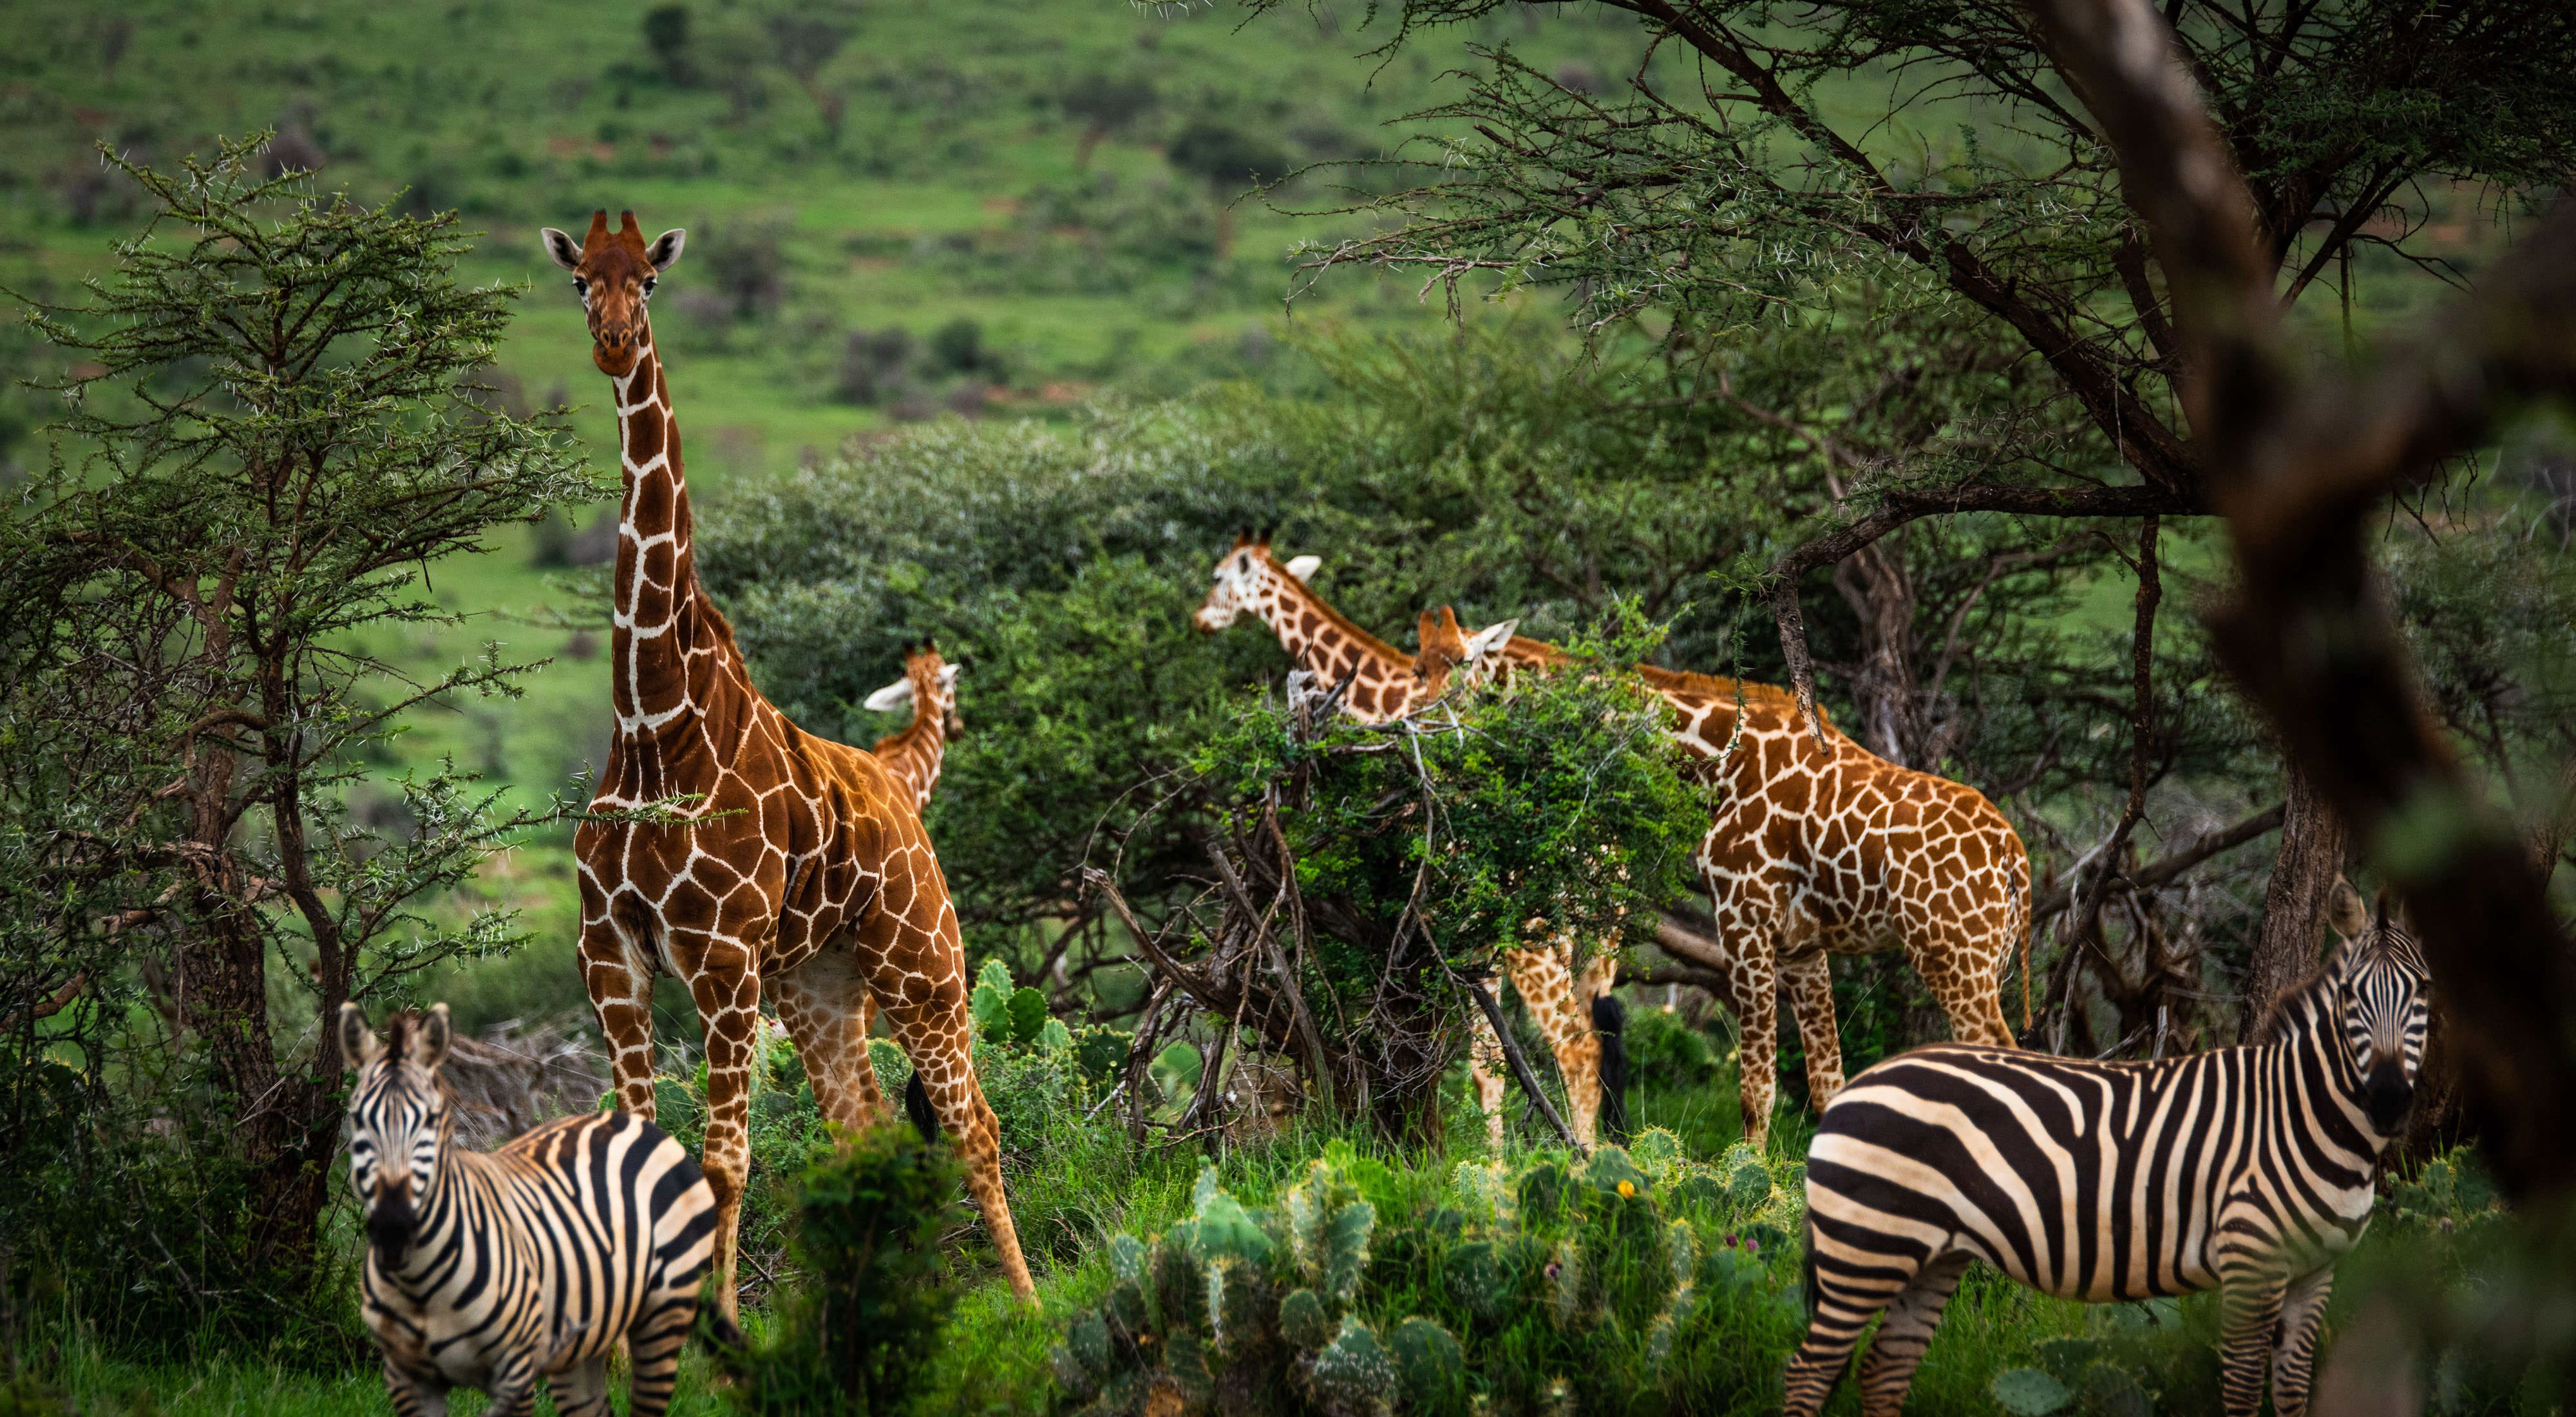 a group of zebras and giraffes graze in a lush green landscape